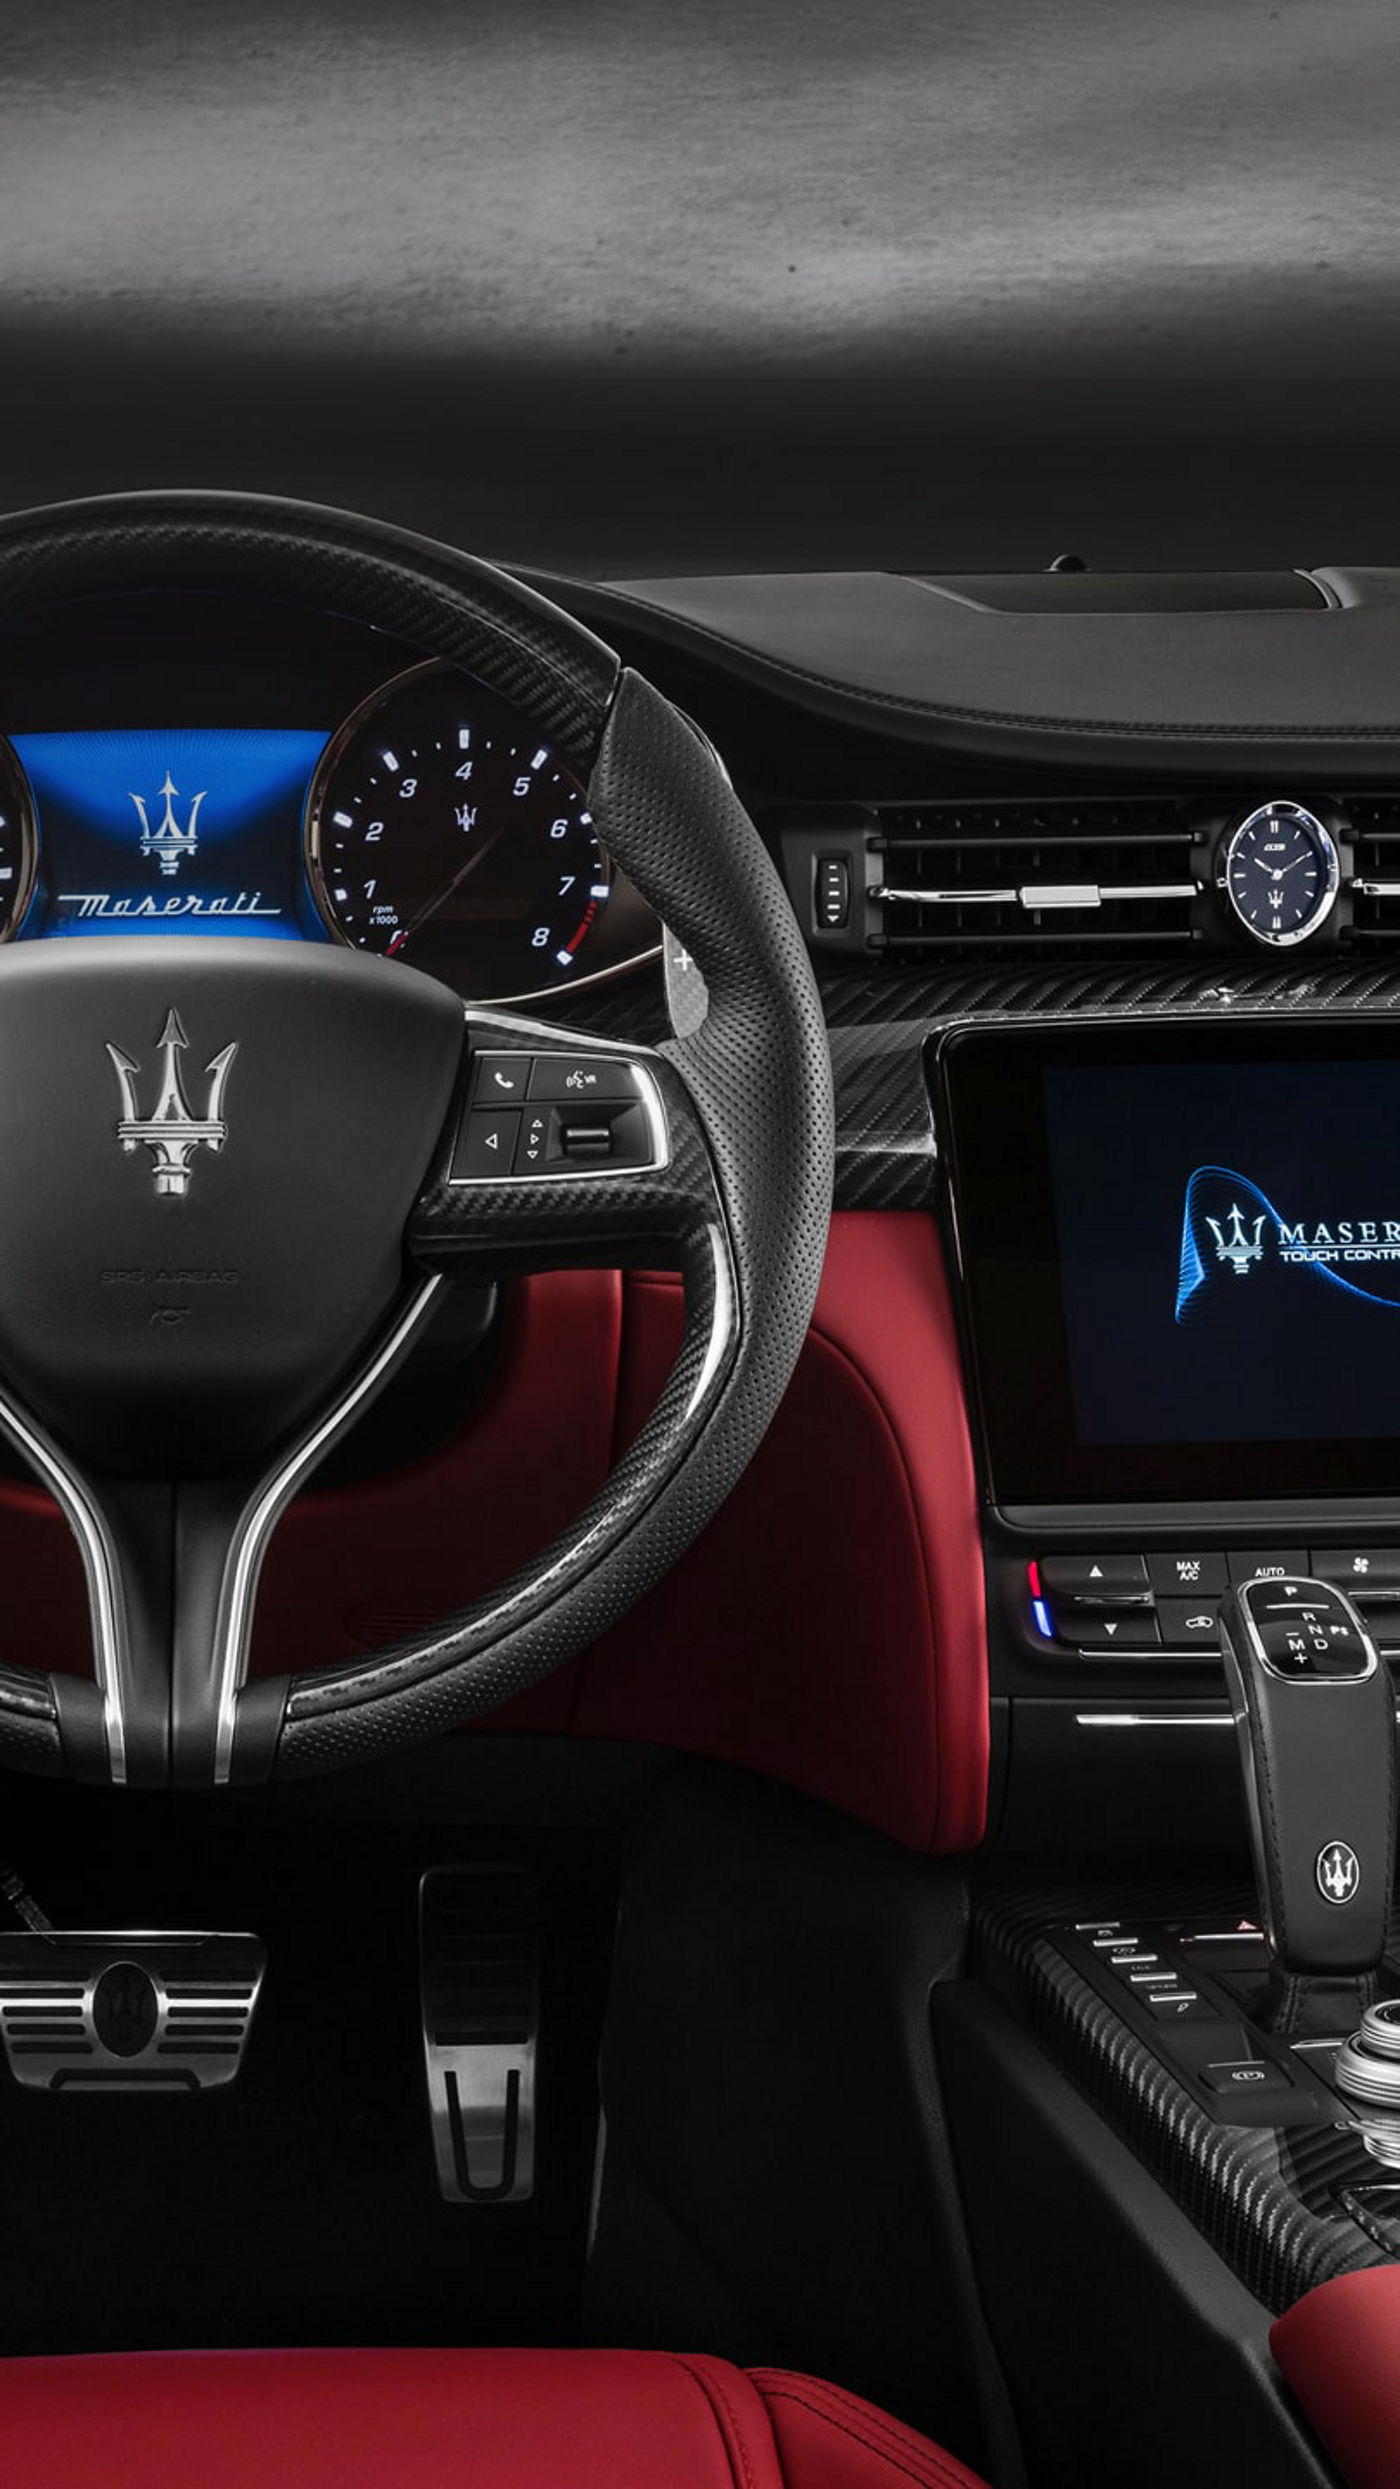 Maserati car dashboard, red and black